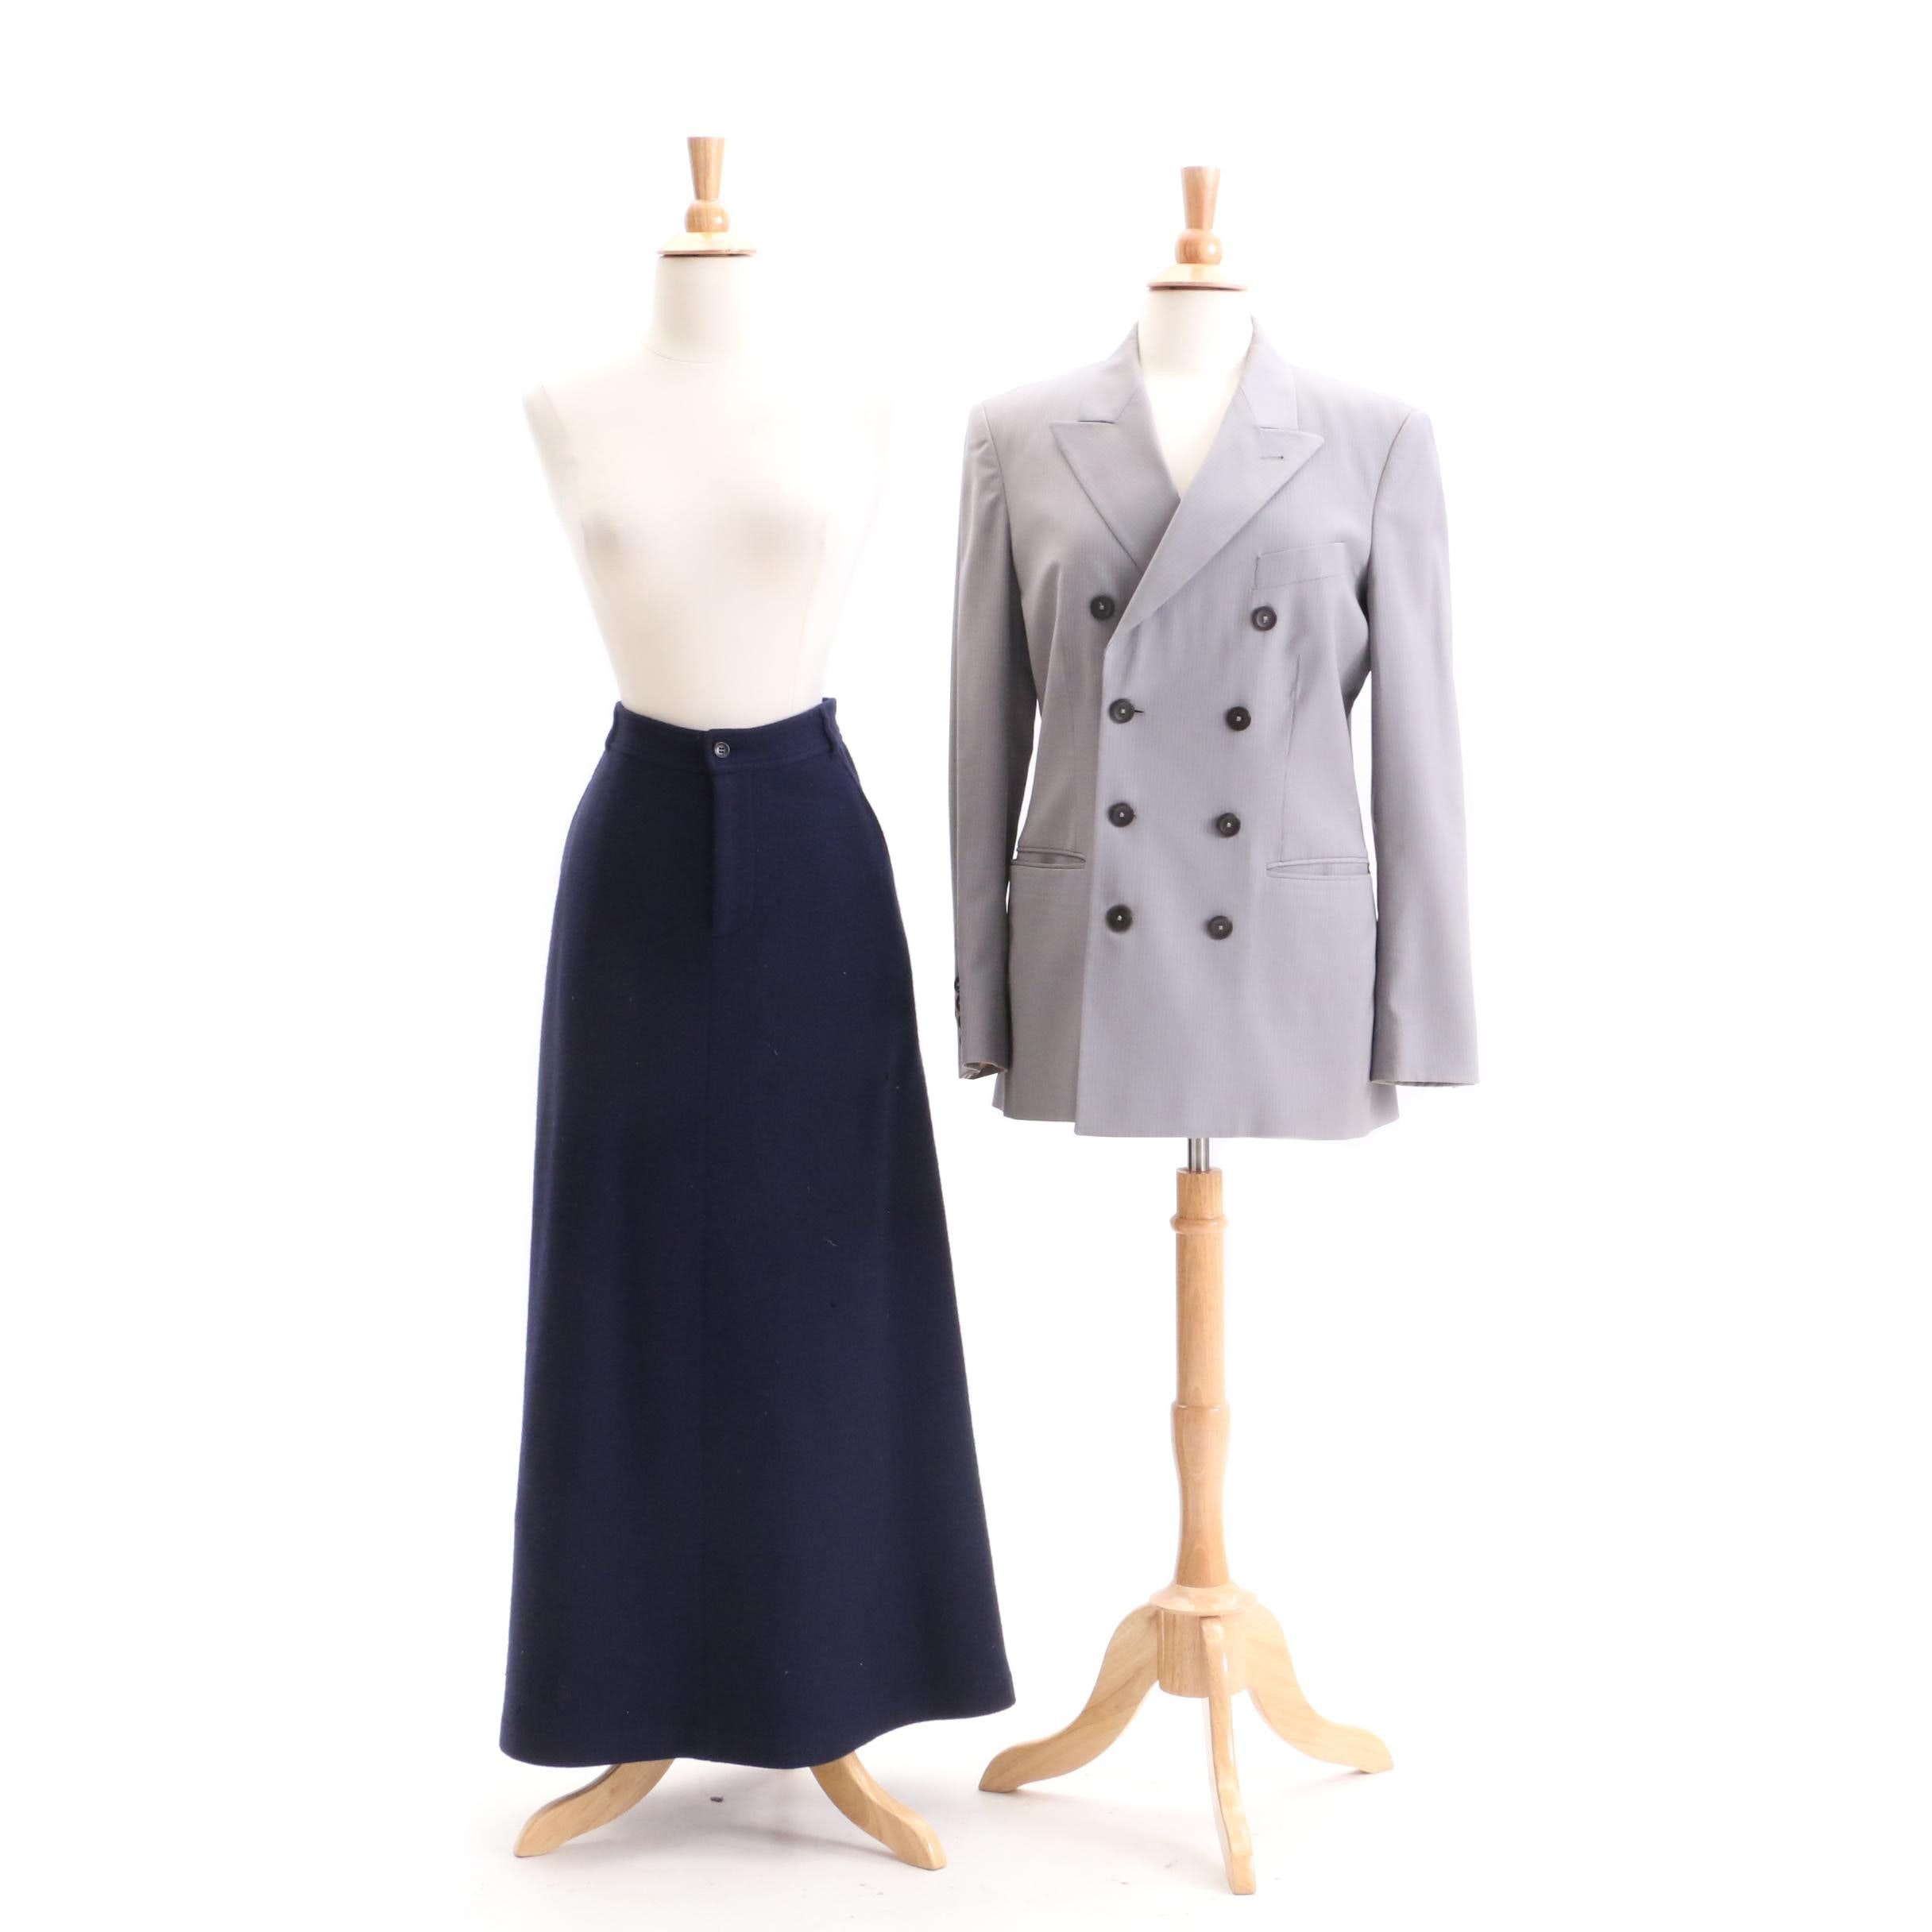 Women's Jean Paul Gaultier Jacket and Comme des Garçons Skirt